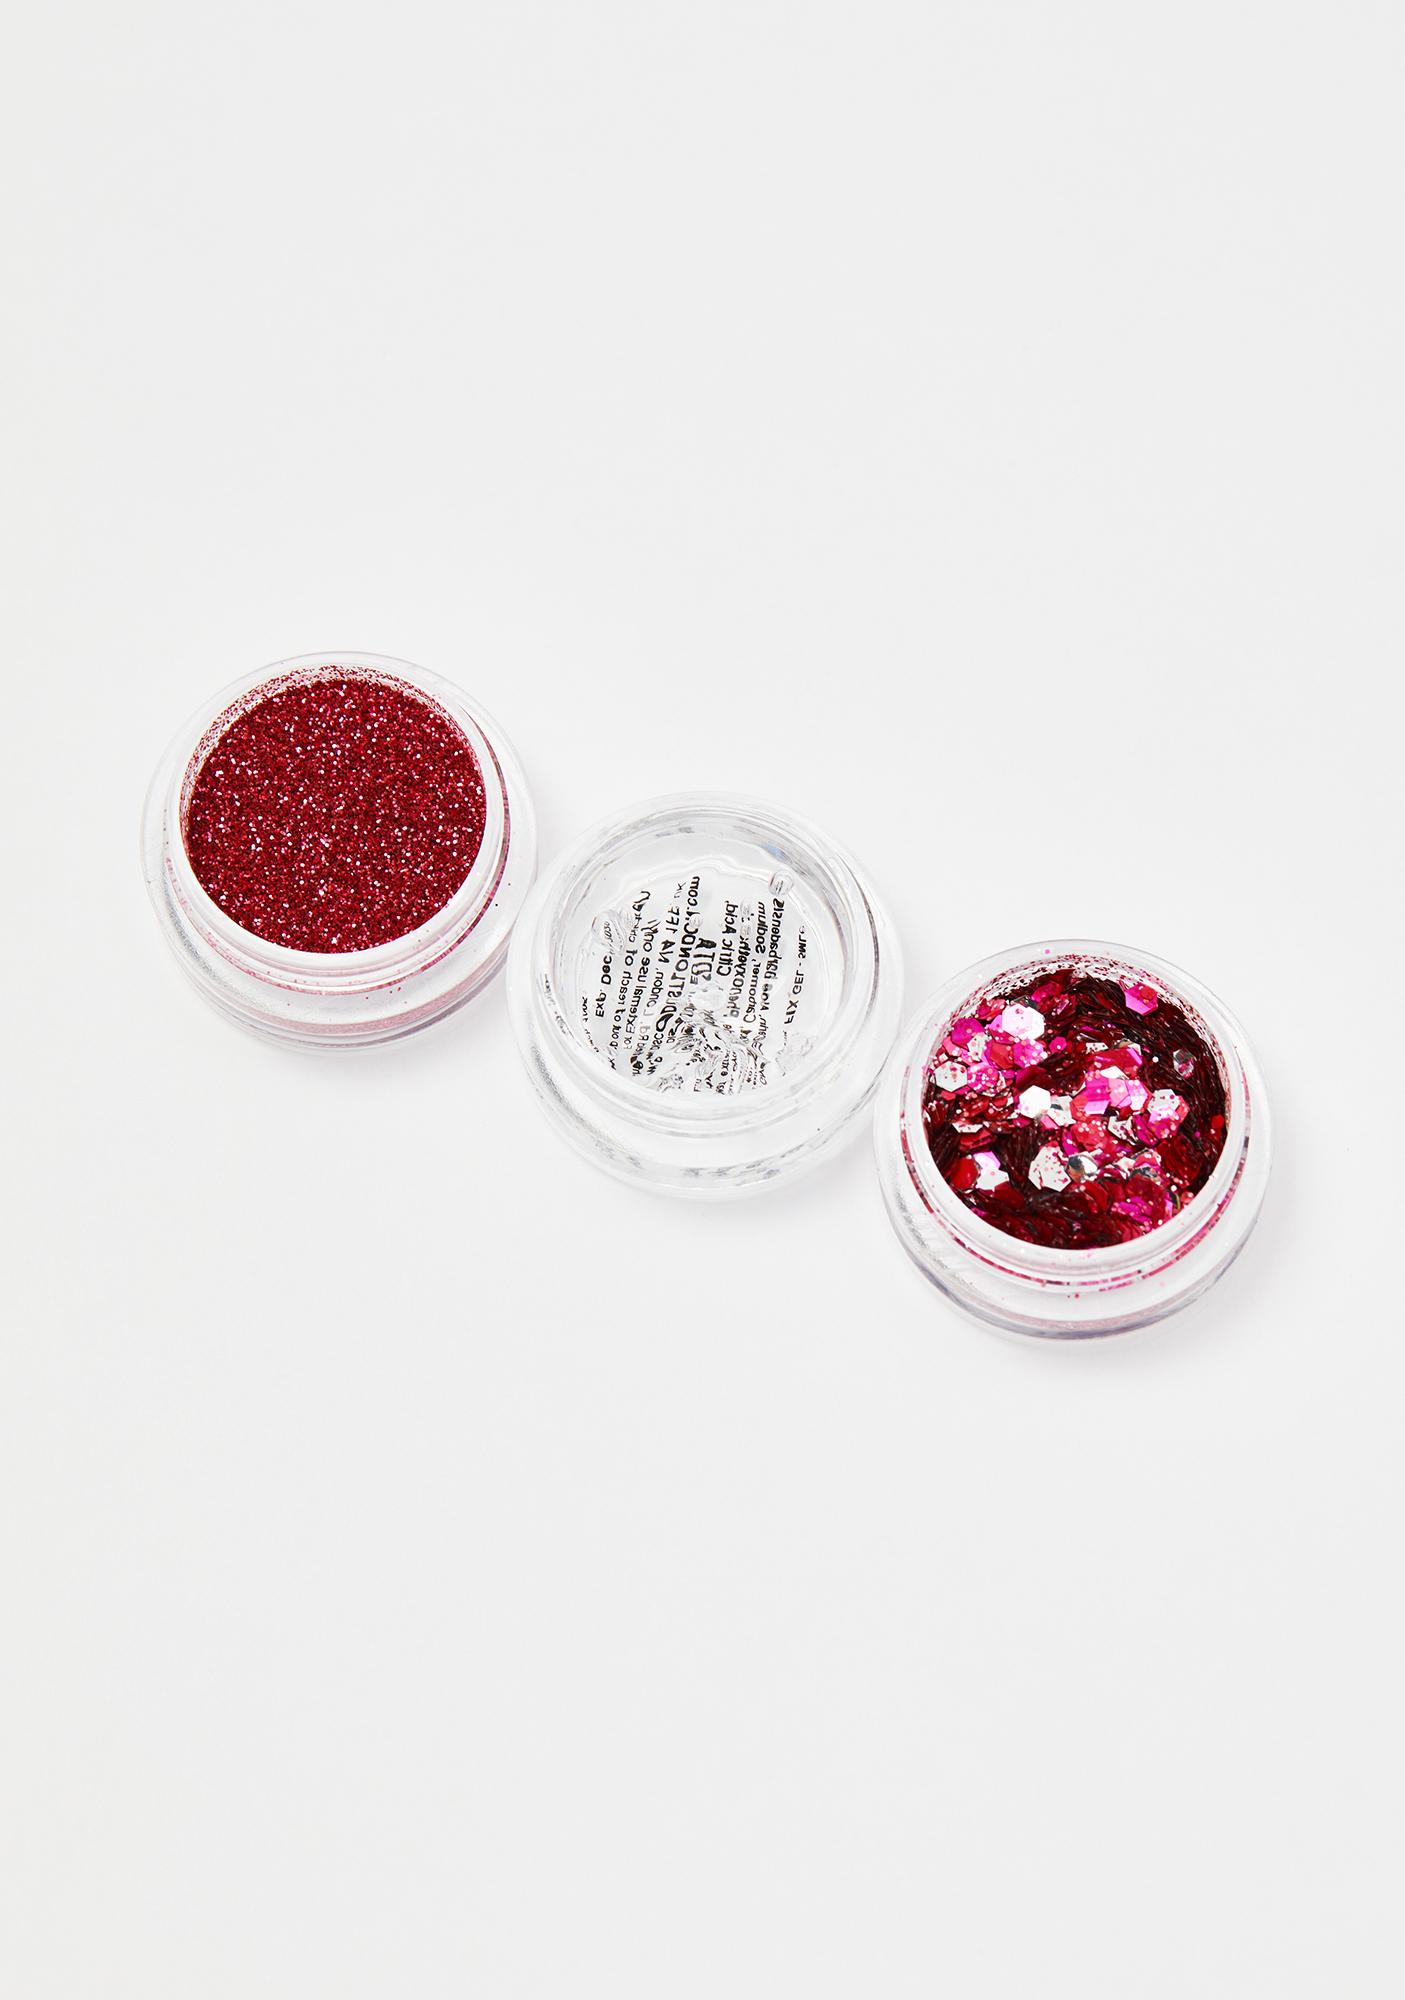 Disco Dust London Angel Biodegradable Glitter Kit